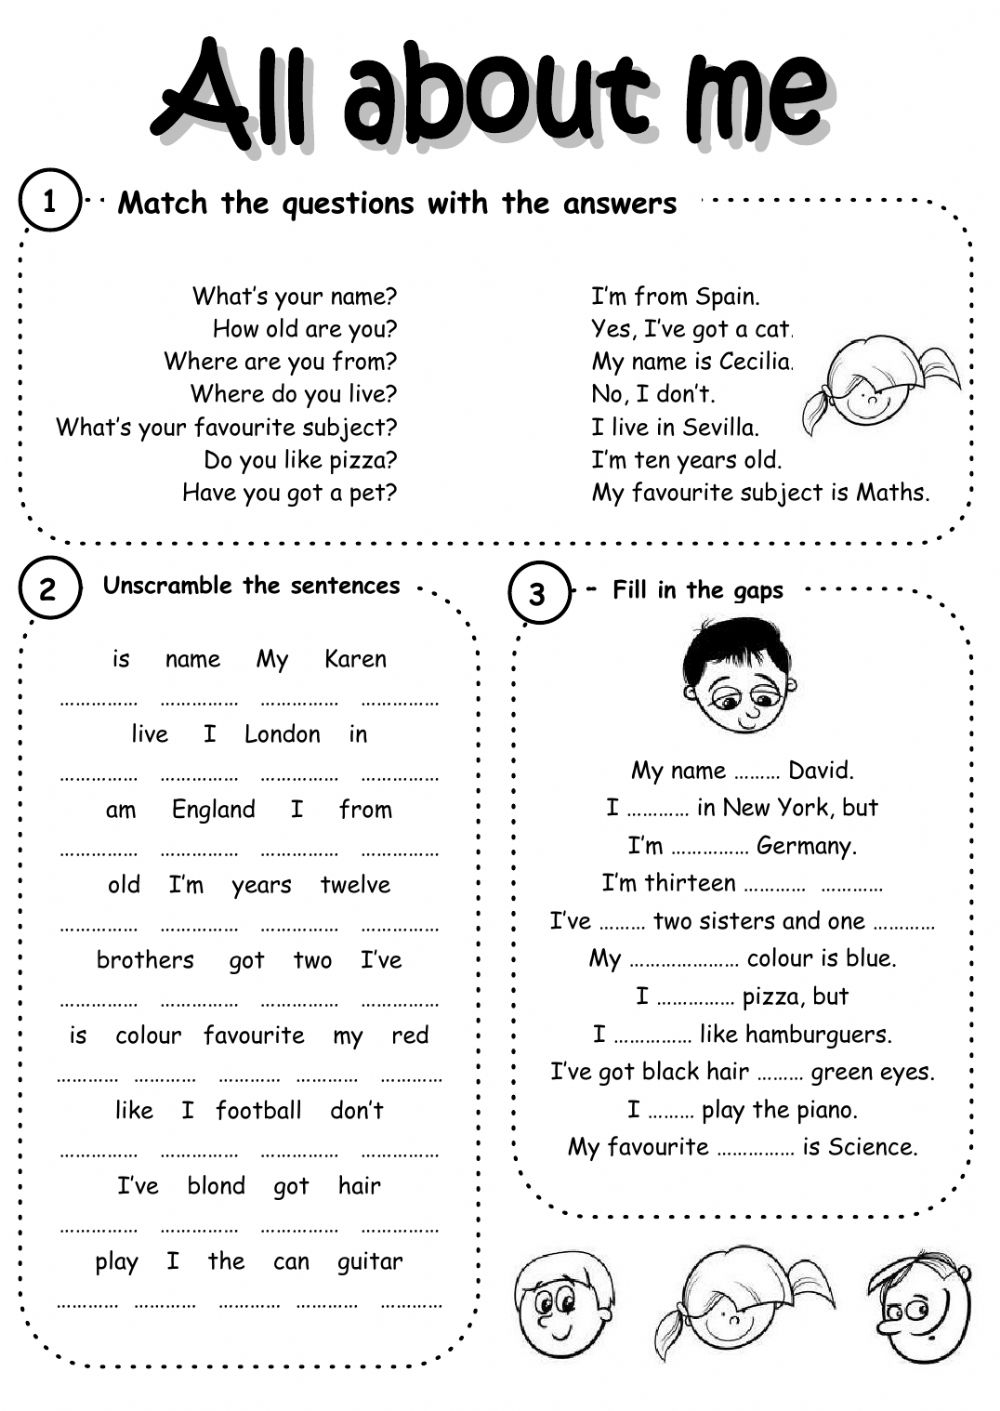 Introducing yourself interactive worksheets interactive worksheet all about me m4hsunfo